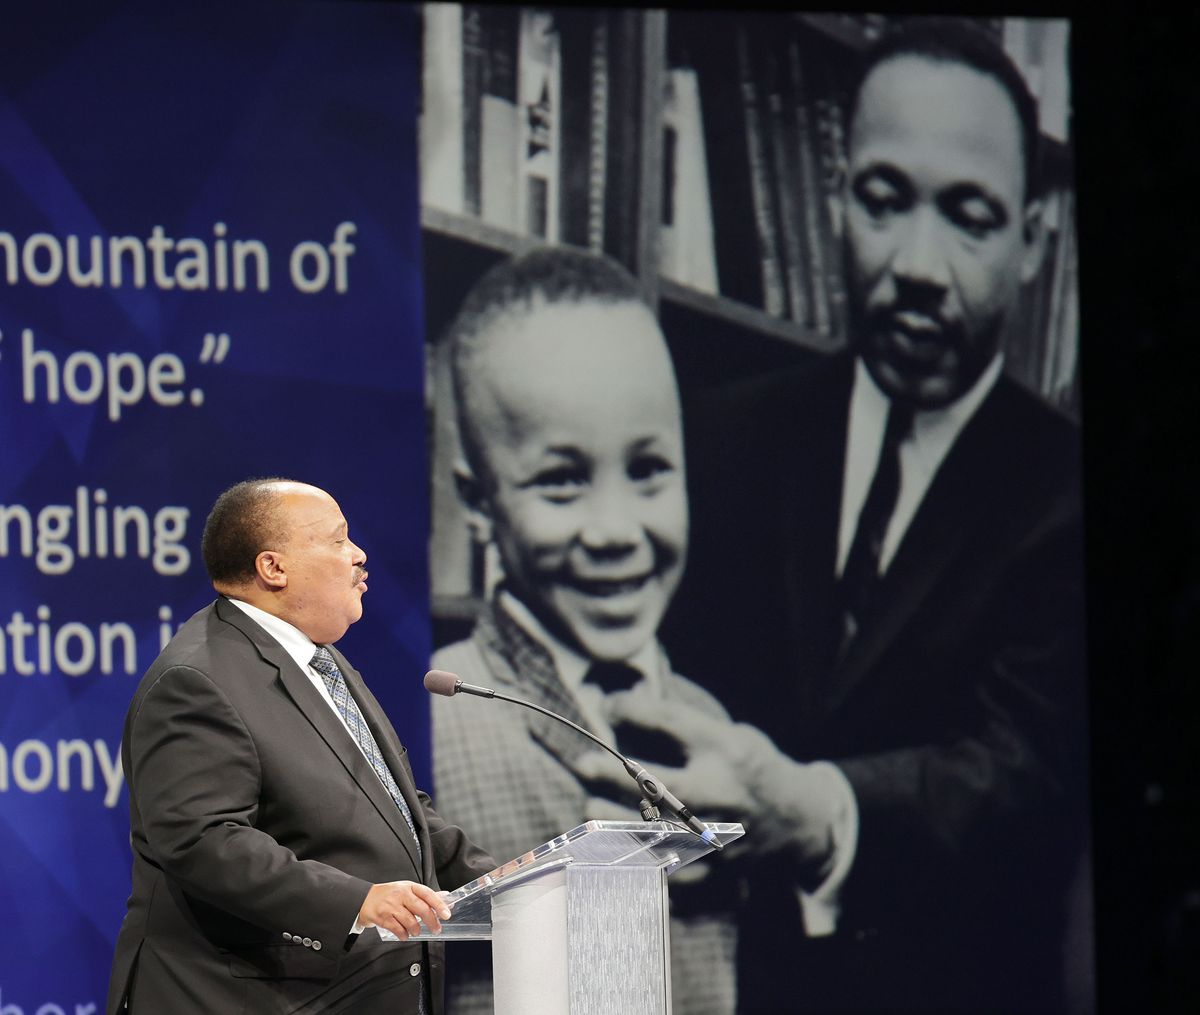 Martin Luther King III speaks during a Brigham Young University forum at the Marriott Center in Provo on Tuesday, Sept. 28, 2021.